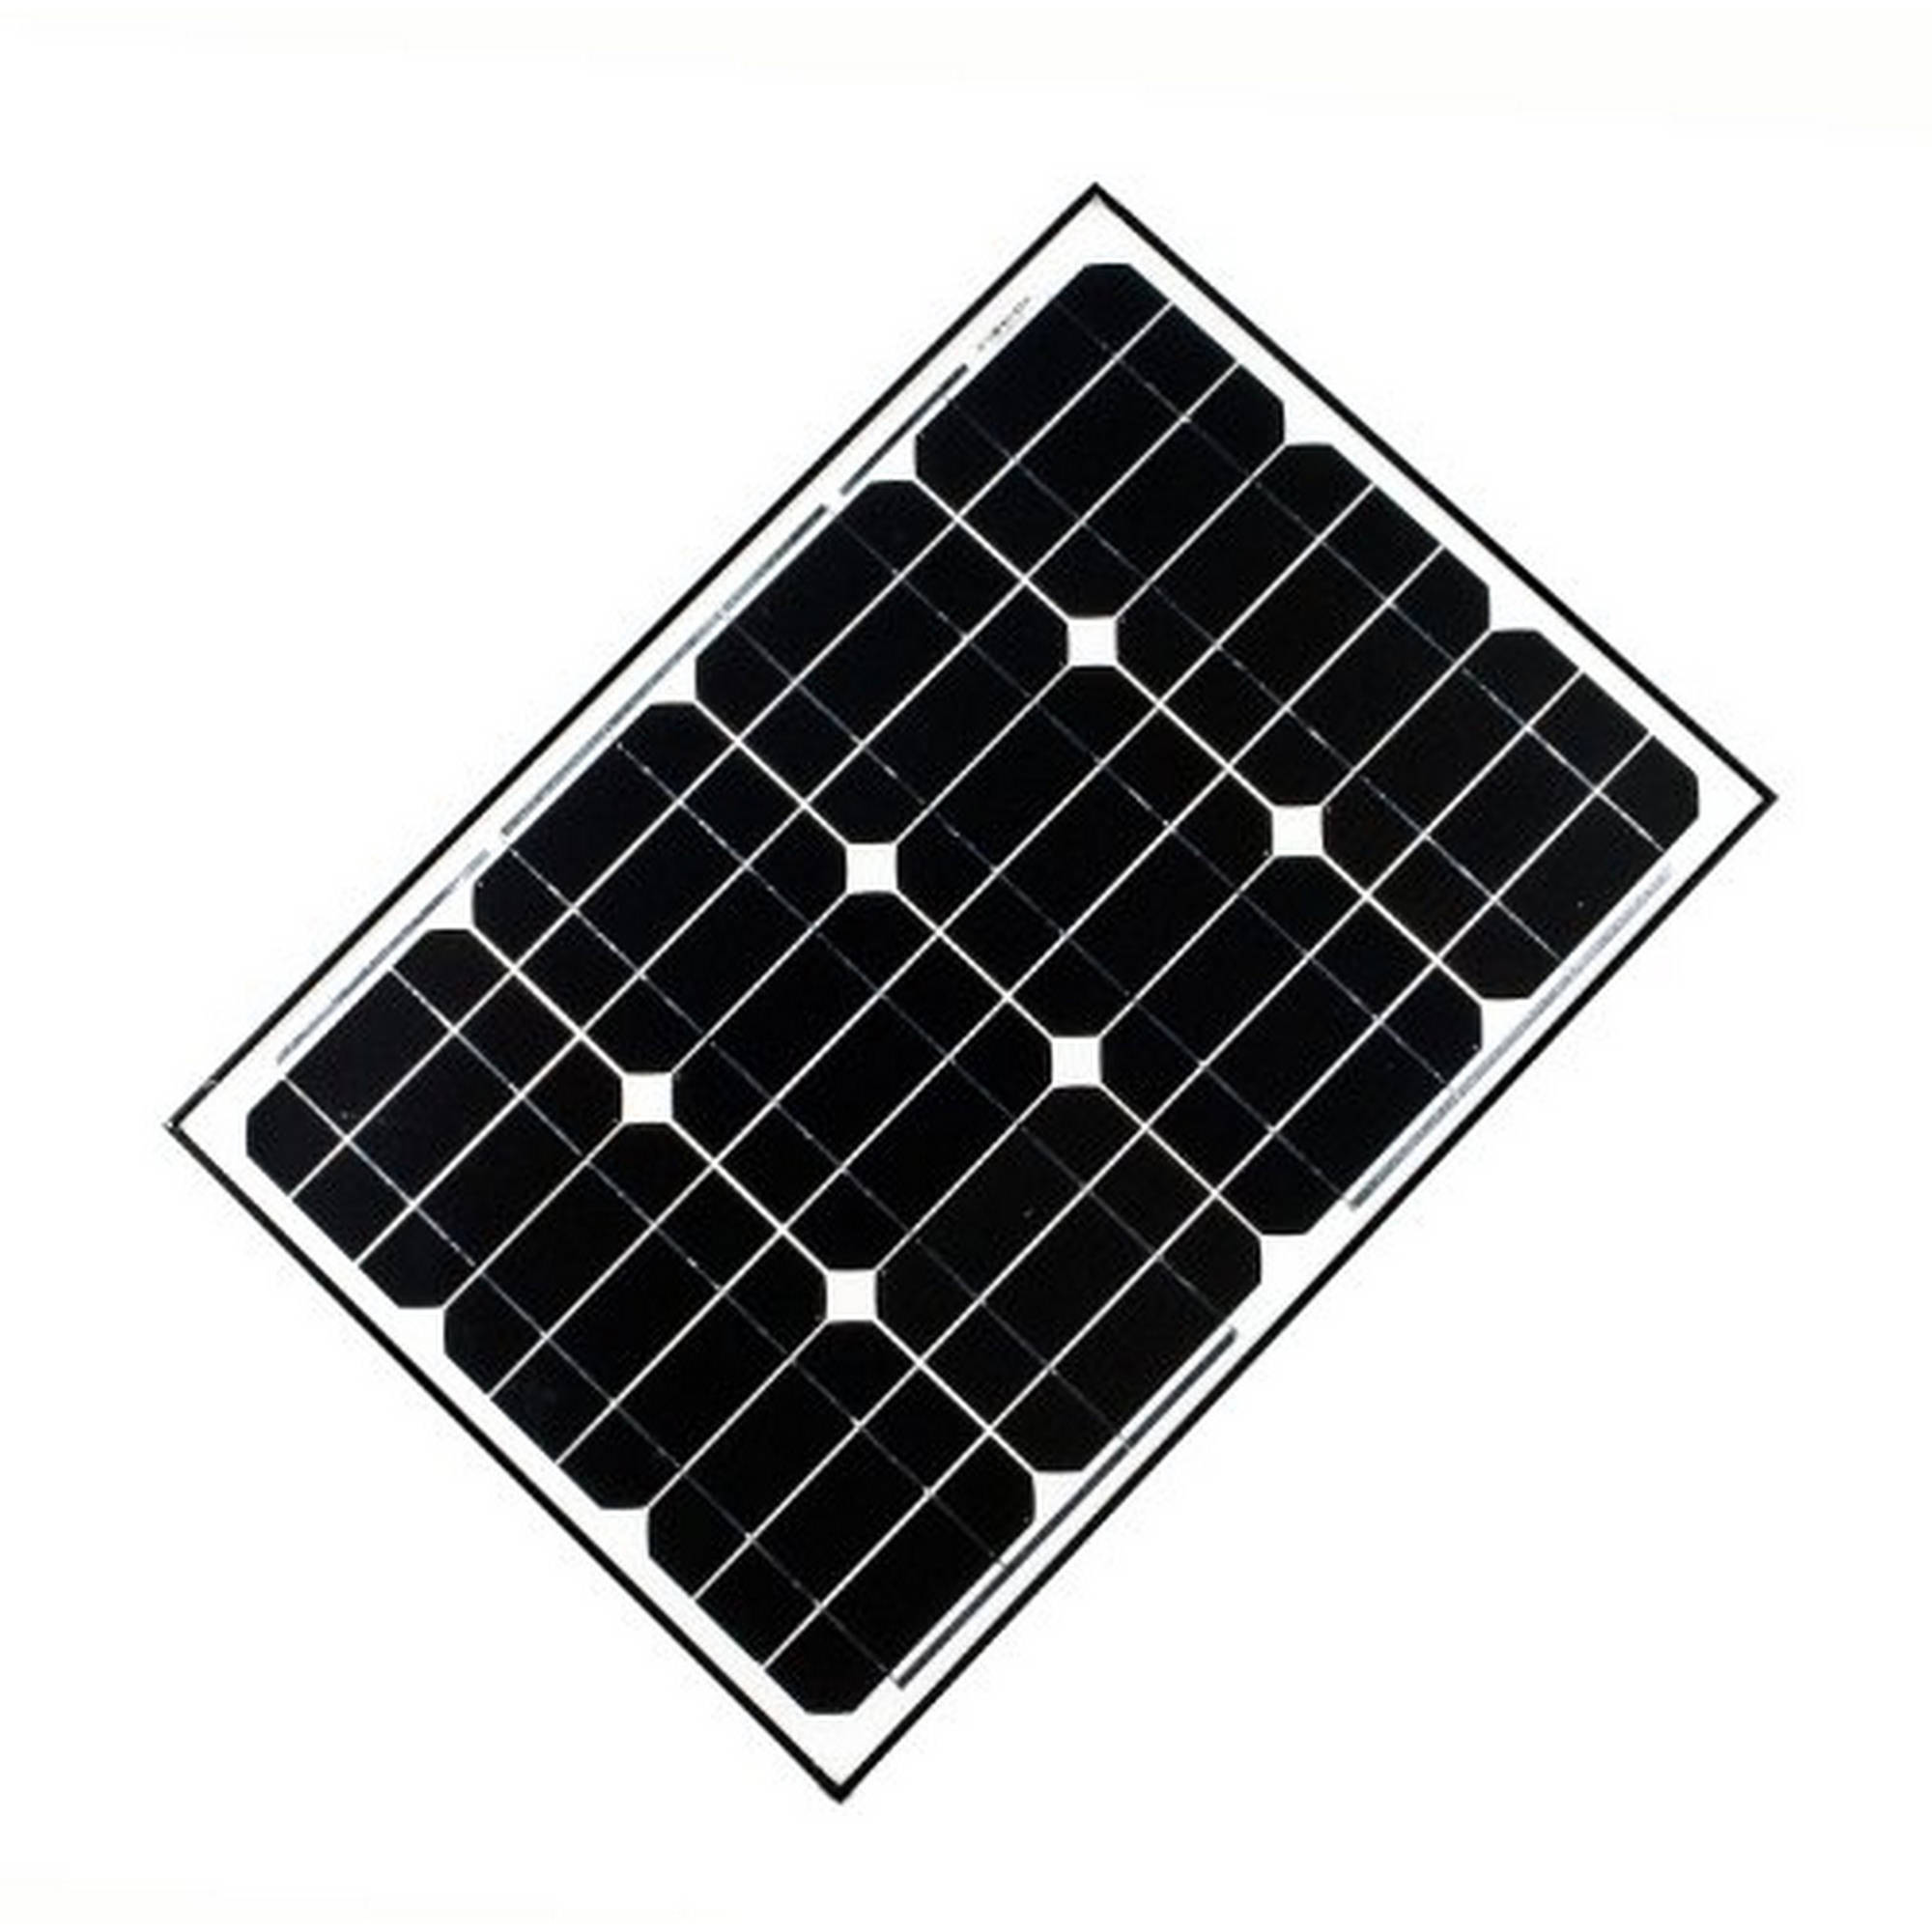 ALEKO Solar Panel Monocrystalline 40W for any DC 12V Application (gate opener, portable charging system, etc.)